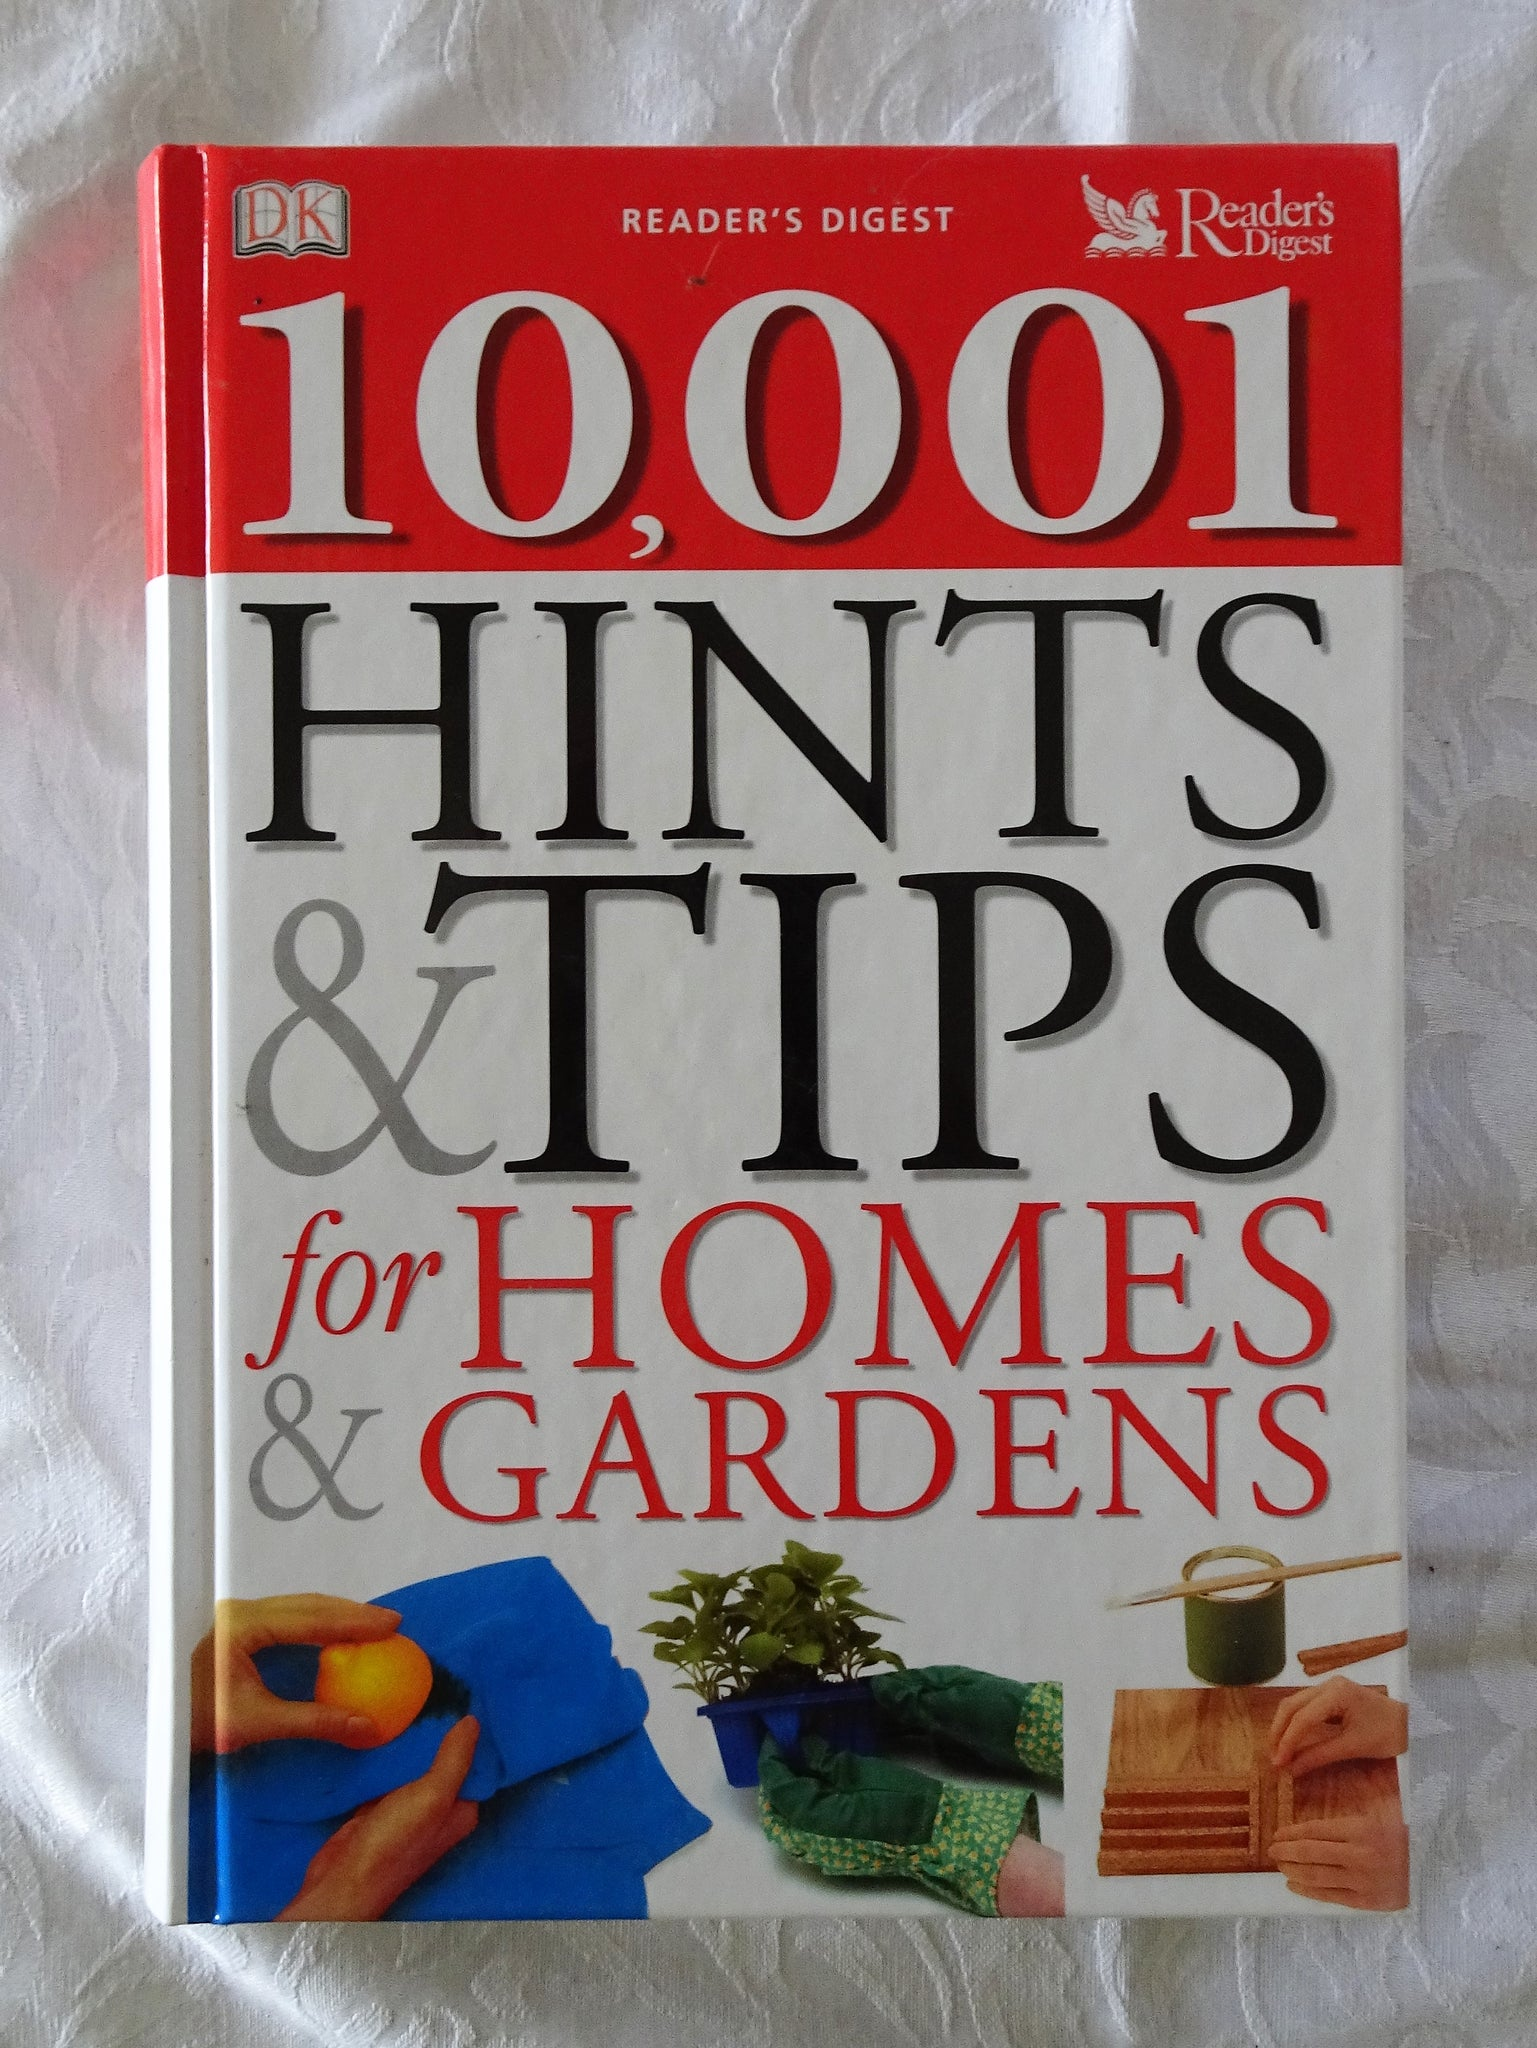 10,001 Hints & Tips for Homes & Gardens ...